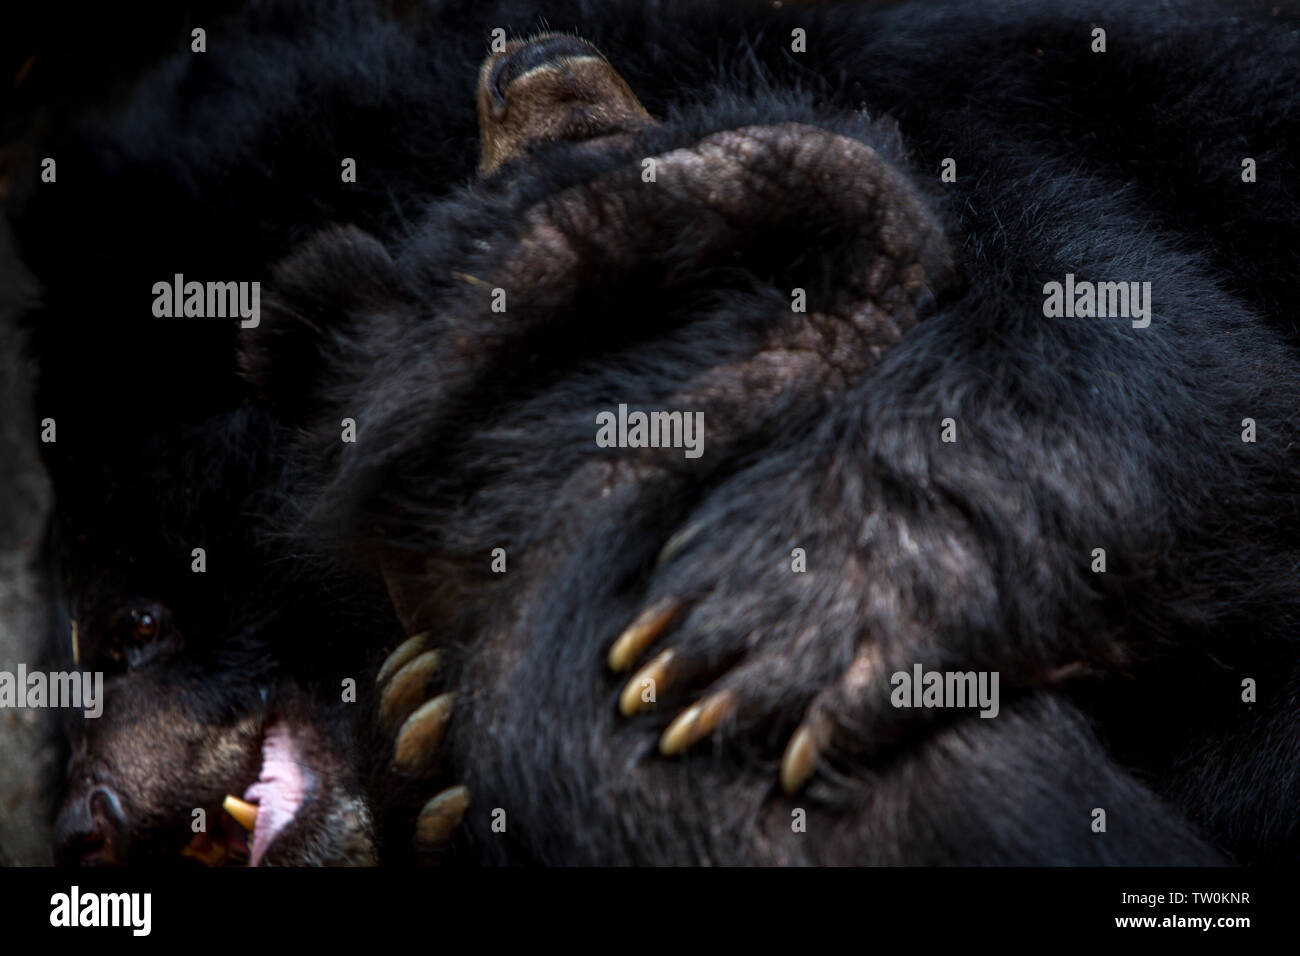 Closeup to the face of two adults Formosa Black Bears figthing with the claws in the forest. Ursus Thibetanus Formosanus figth Stock Photo